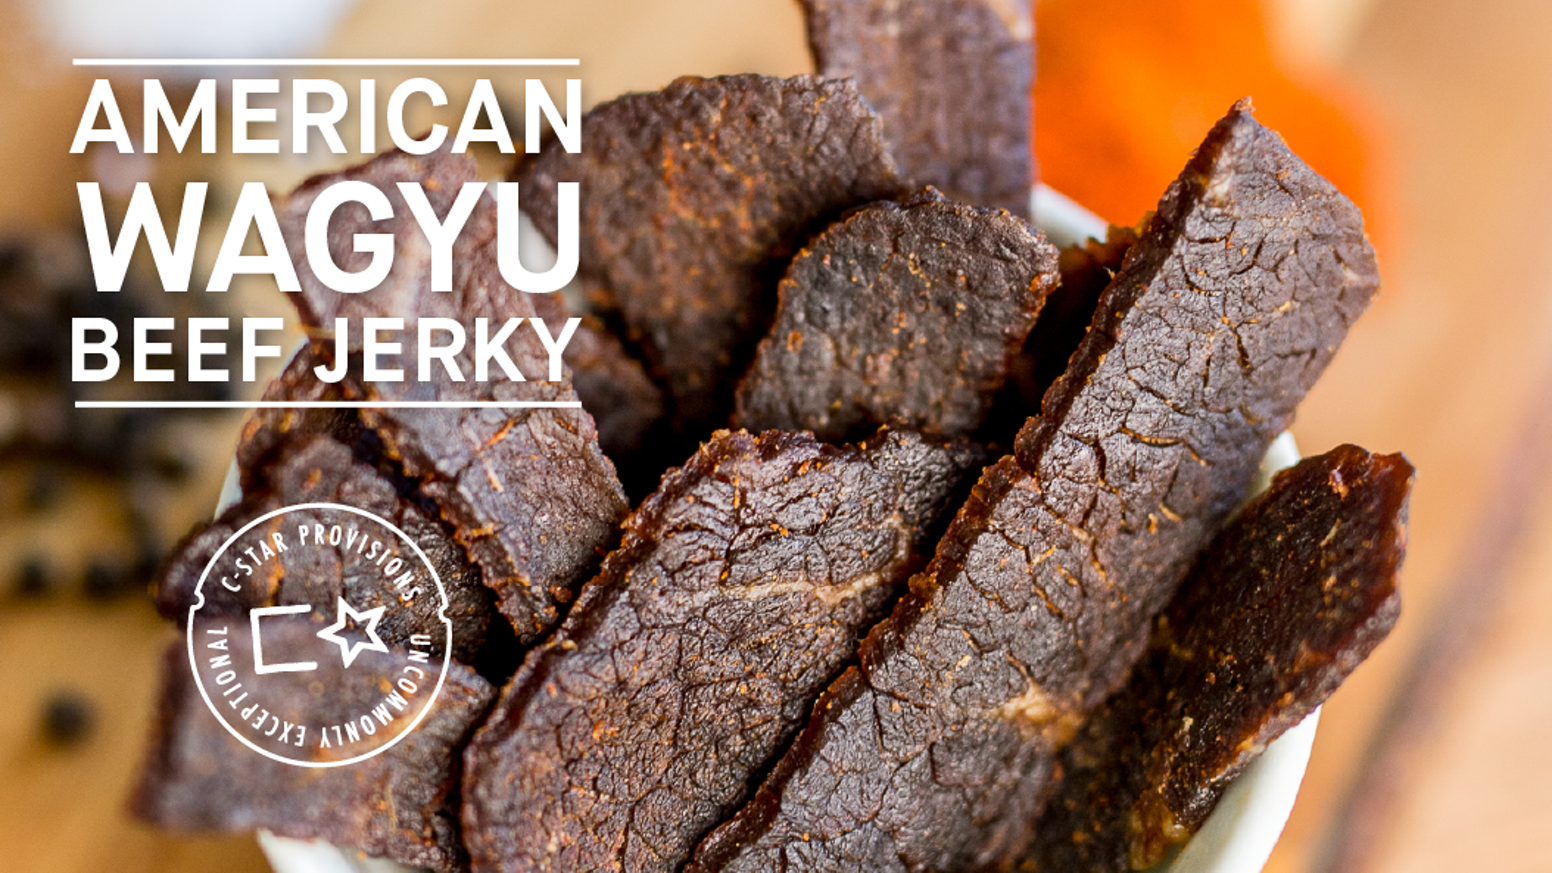 Cowboy Star Provisions proudly presents an all-natural, rich, and full-flavored wagyu beef jerky sourced locally from the USA!